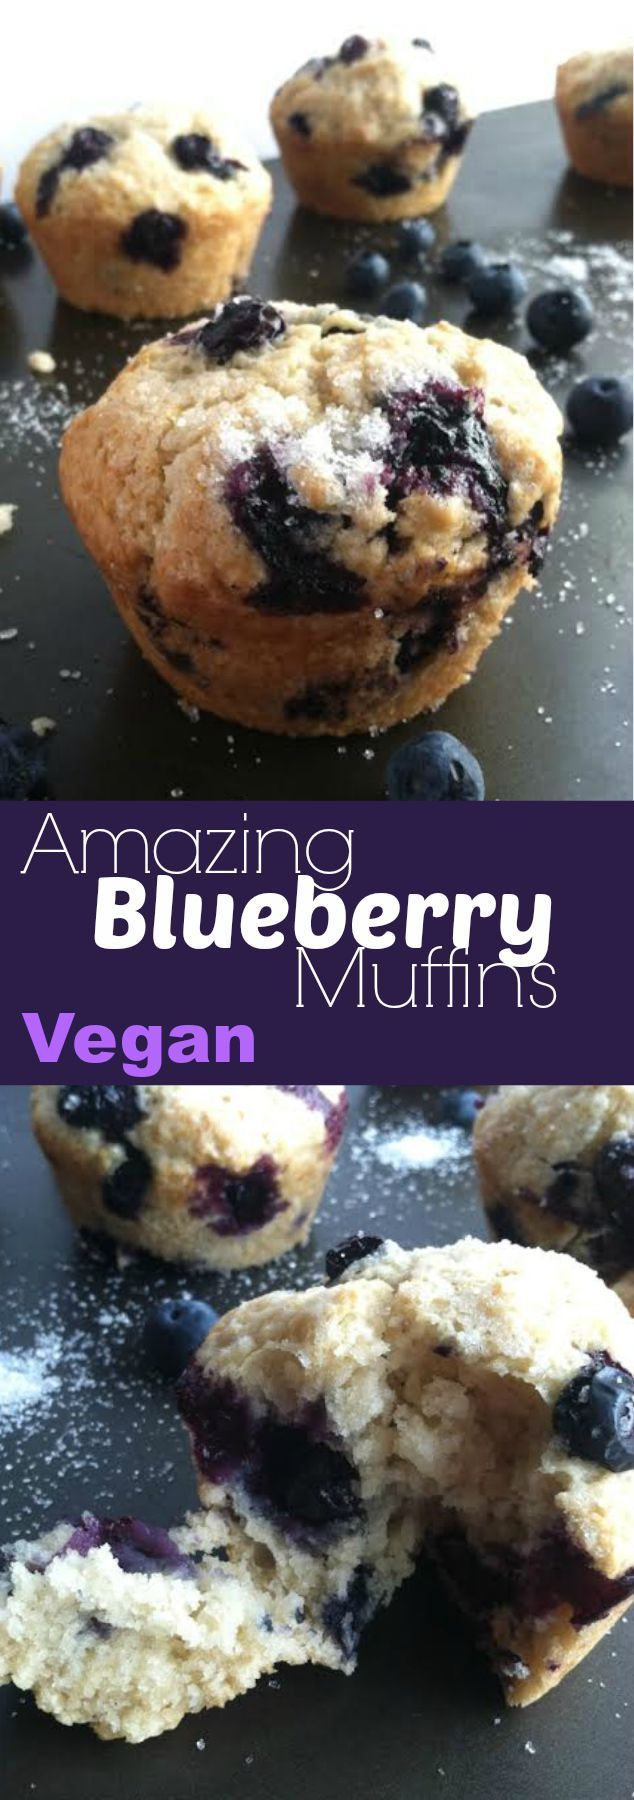 Amazing Blueberry Muffins – Vegan! these are the best weekend breakfast with some coffee or tea! serve them warm and relax! / TwoRaspberries.com